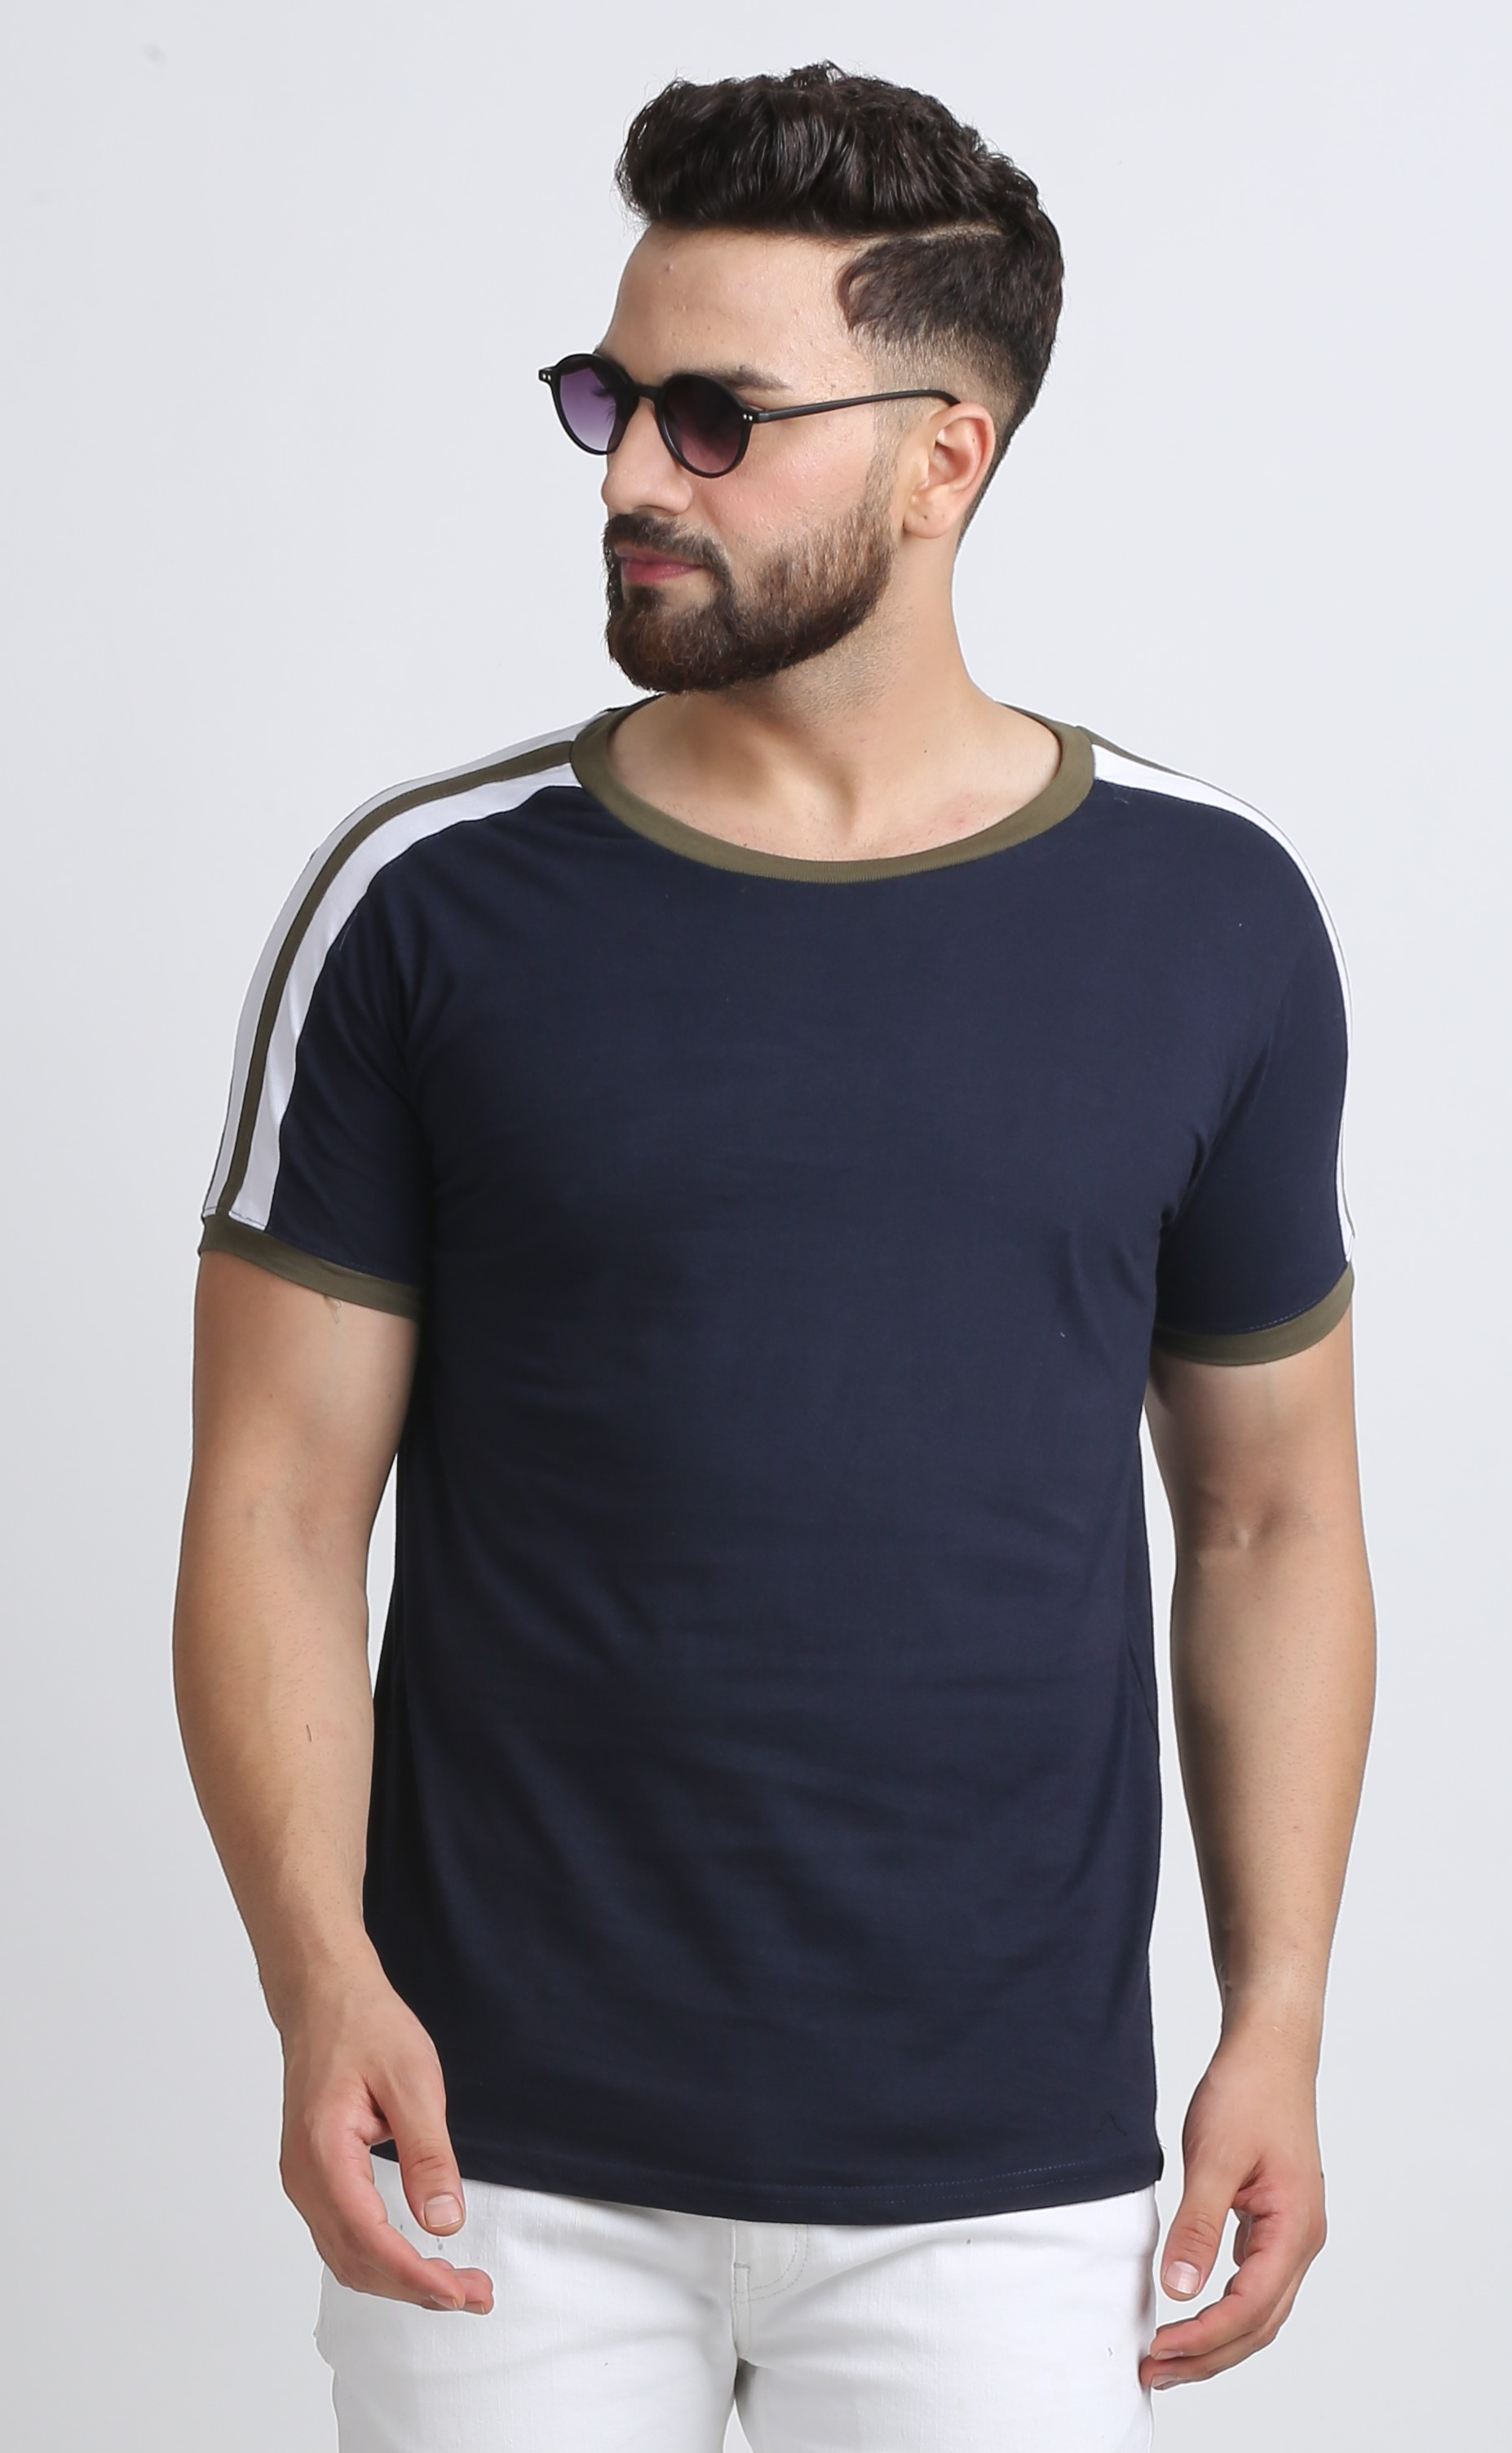 Leotude Navy Cotton Round Neck T-shirt for Men